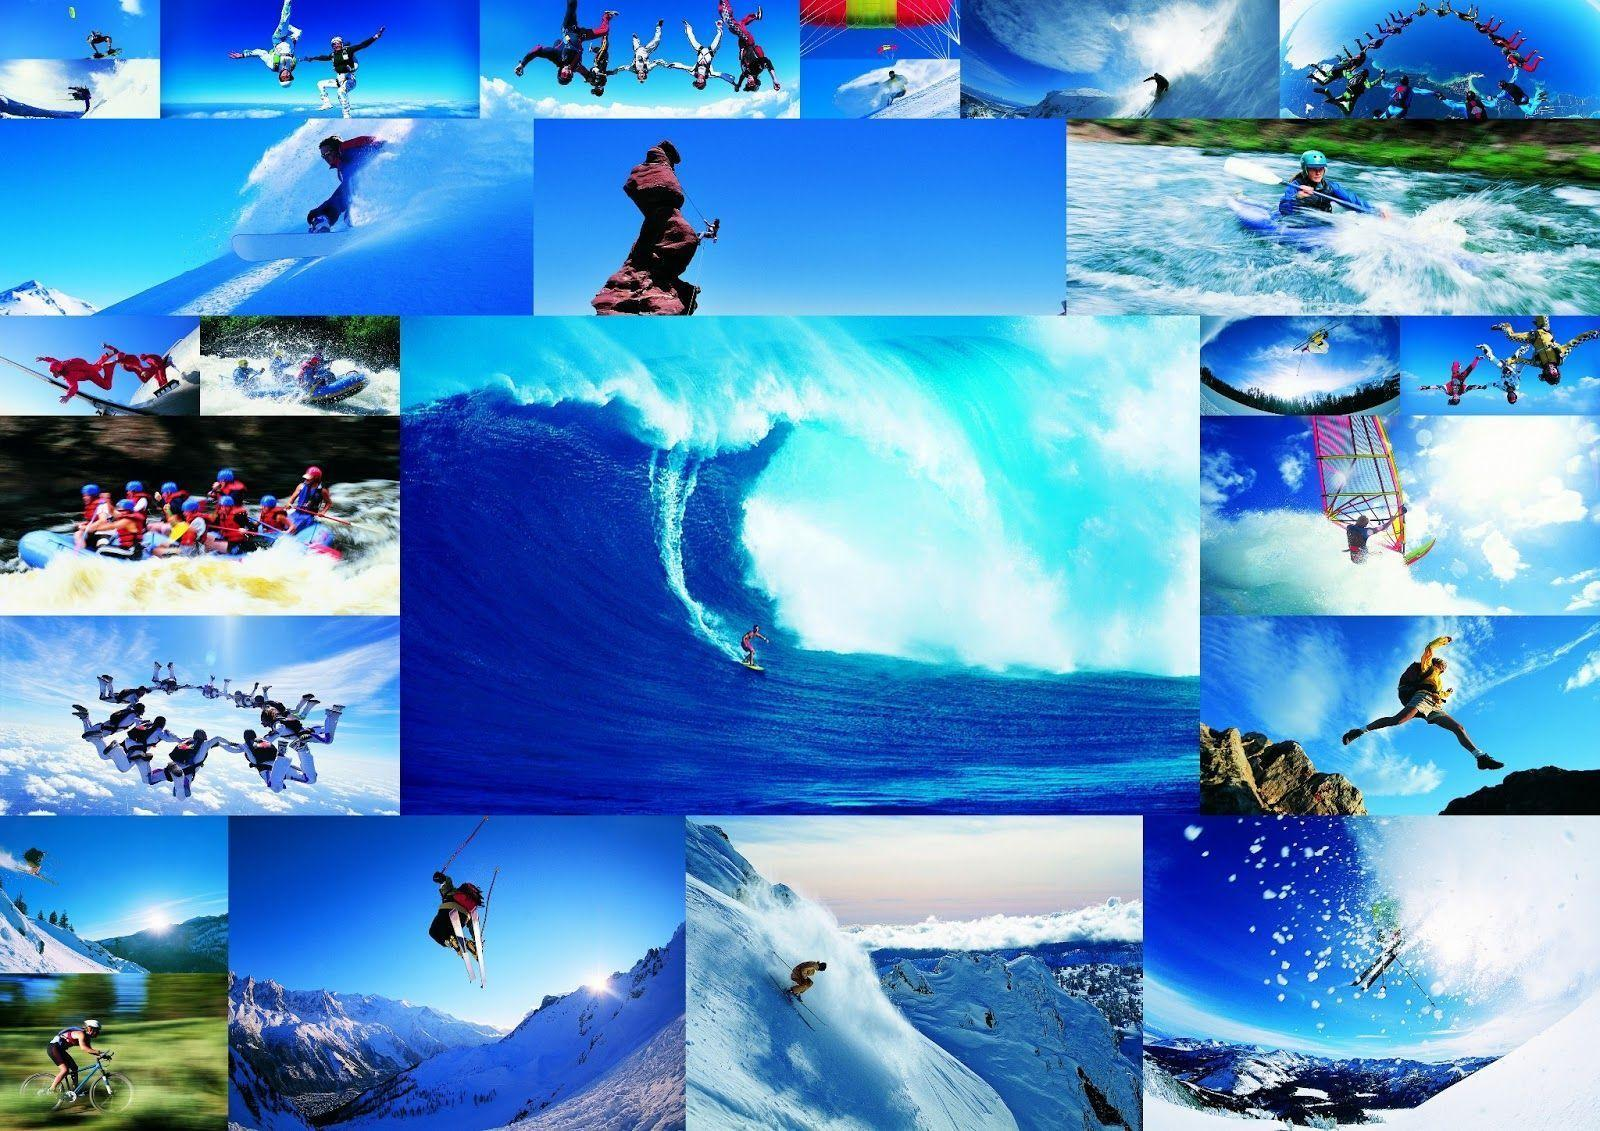 Extreme Sport Wallpaper Iphone: Extreme Sport Wallpapers